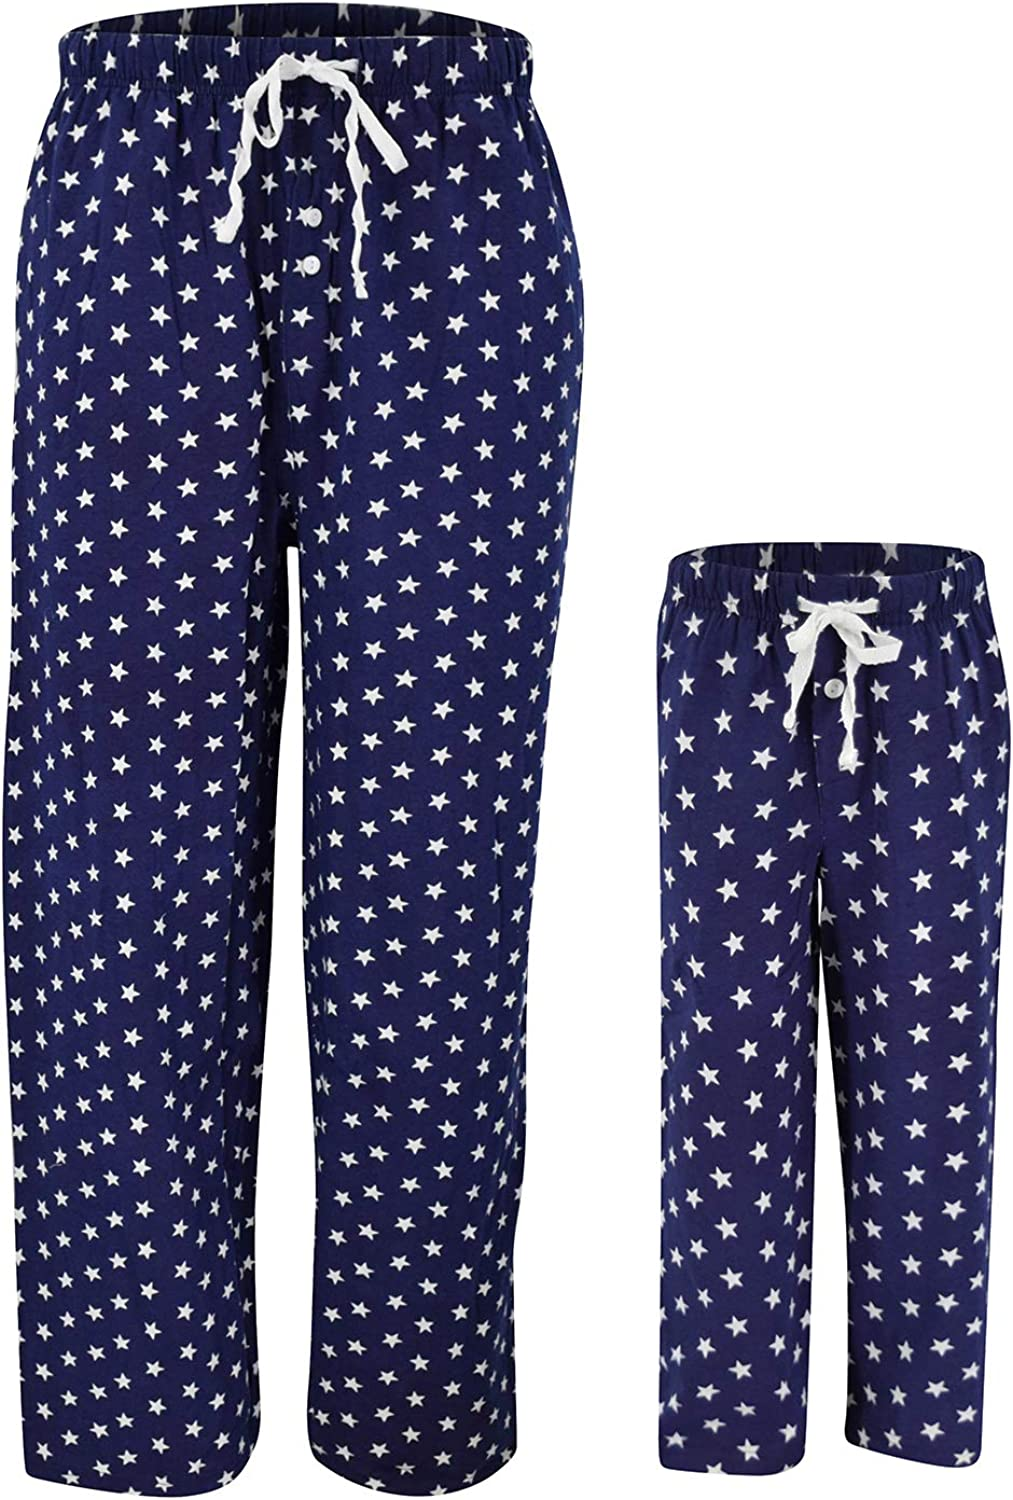 Blue and White Star Matching Family 4th of July Patriotic Pajama Pants